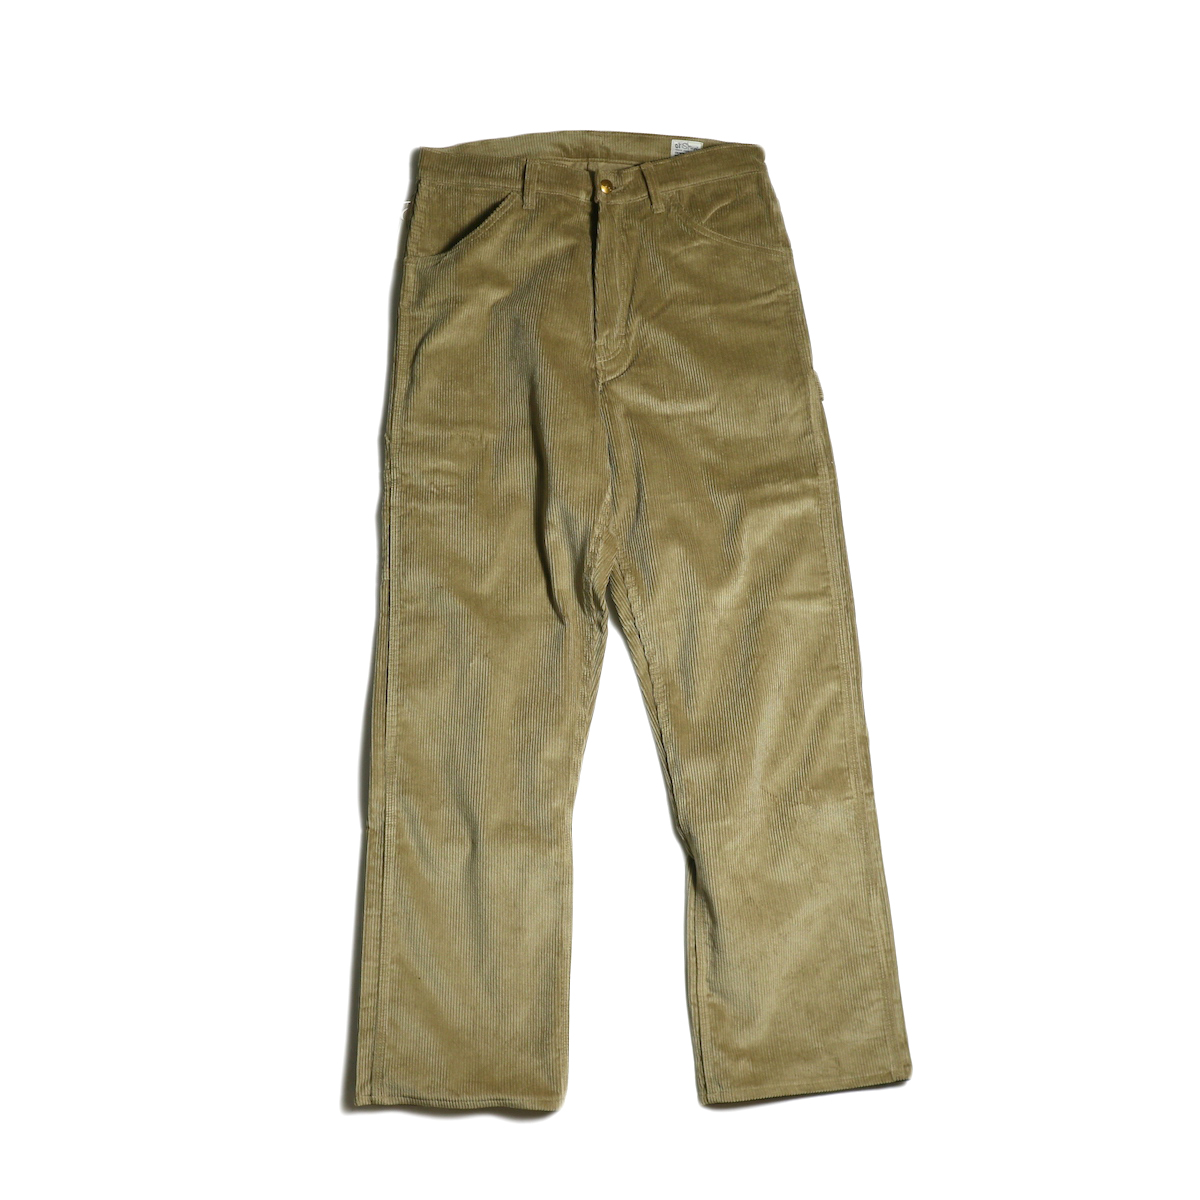 orSlow / PAINTER PANTS (Cords Khaki)